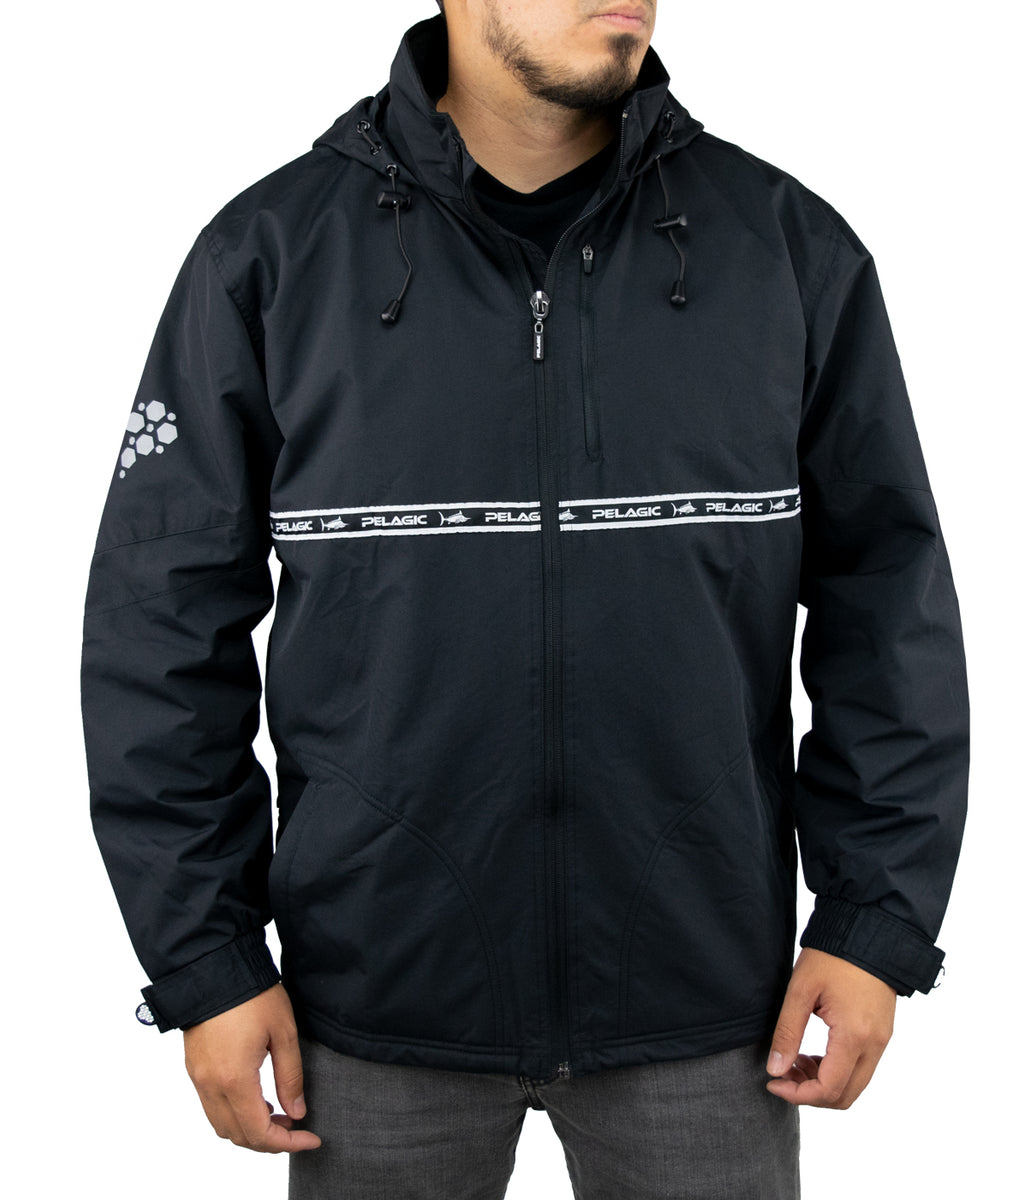 Hurricane Jacket Big Image - 6